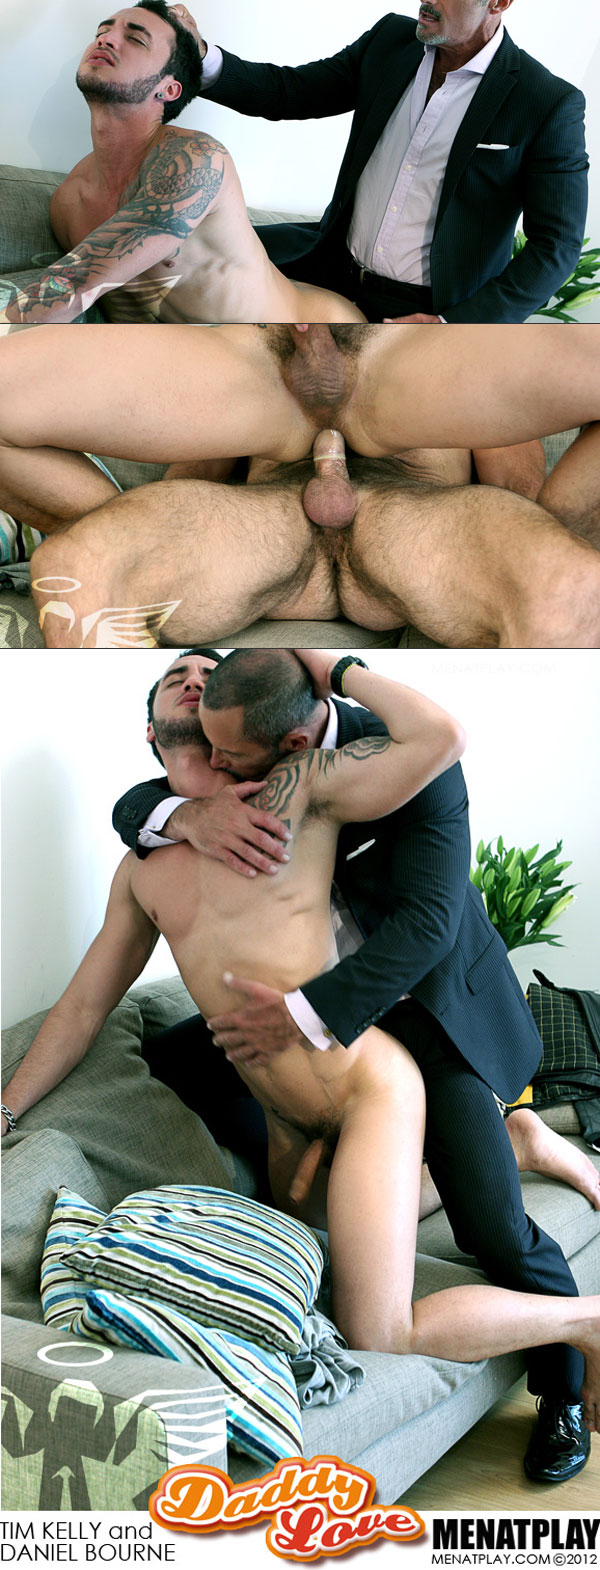 Men at Play's Daddy Love